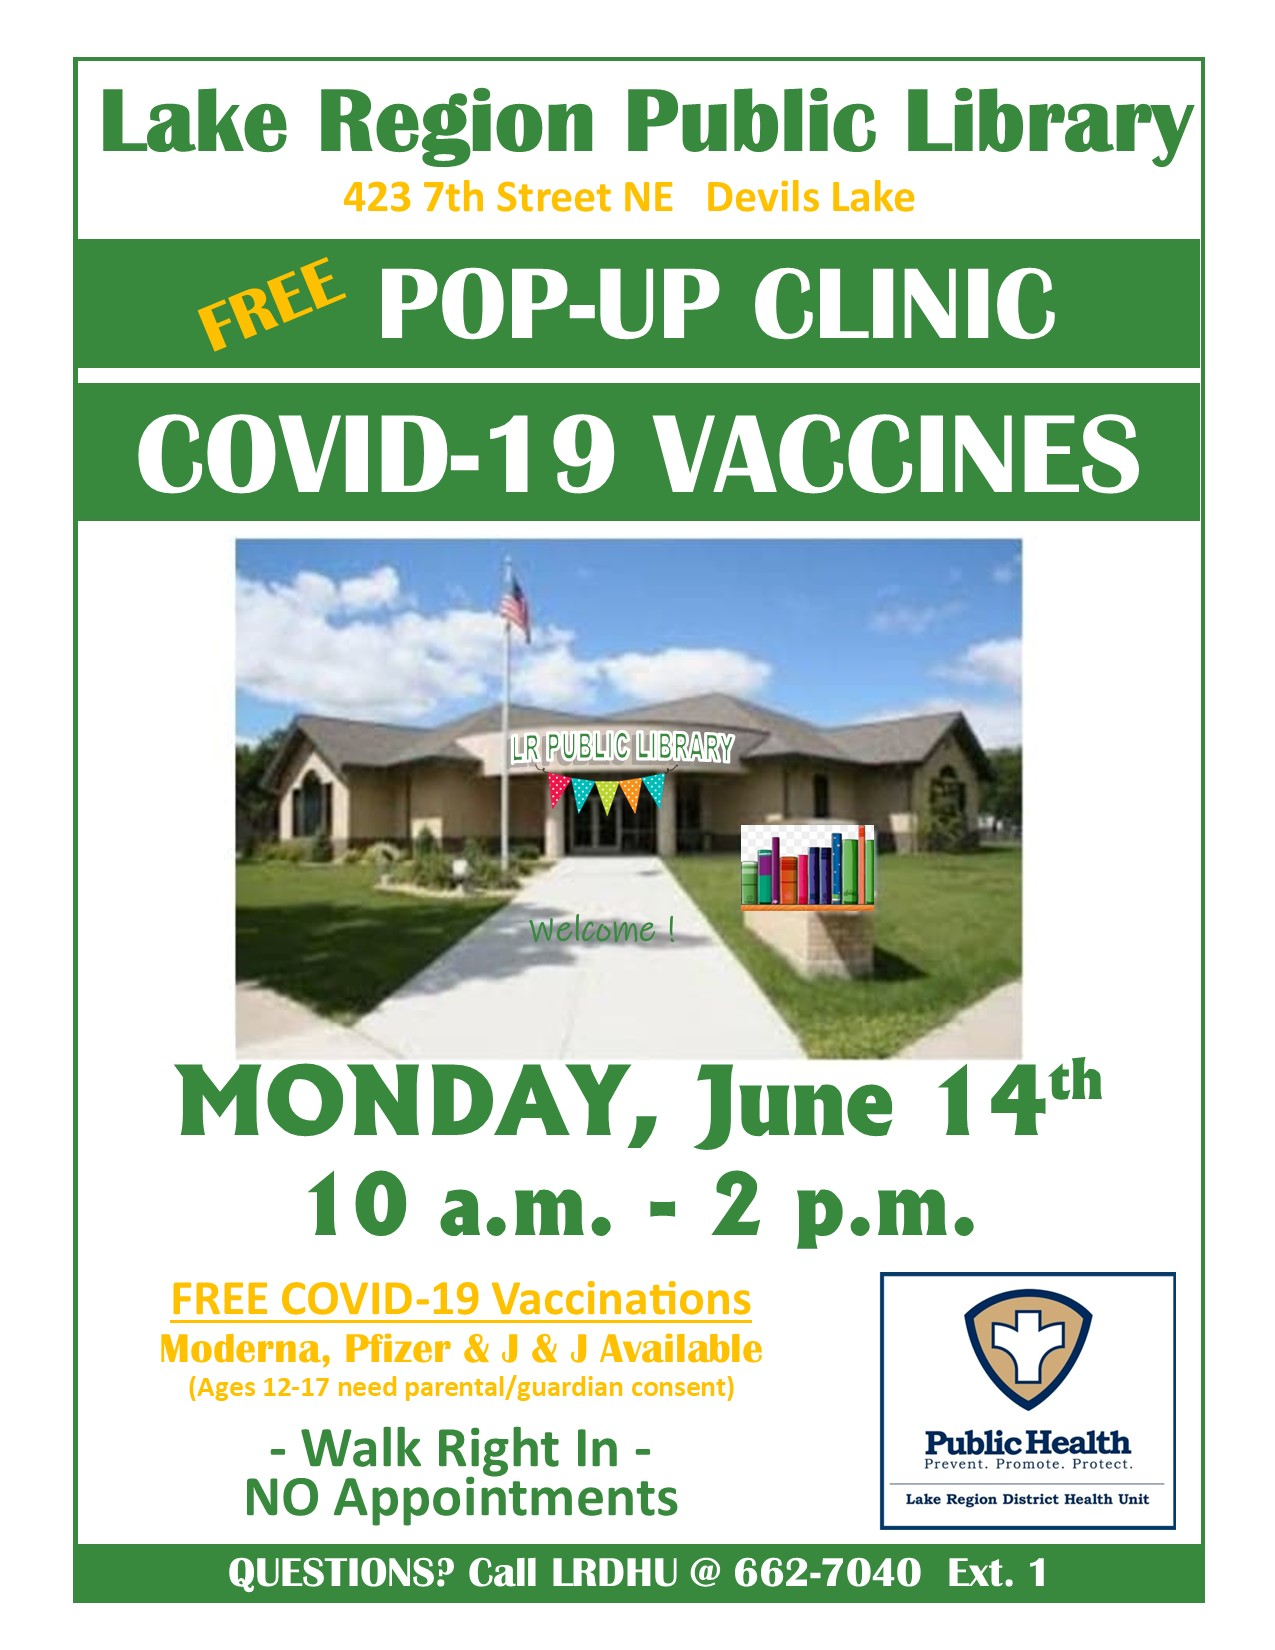 COVID Vaccines Pop Up Clinic at the Library